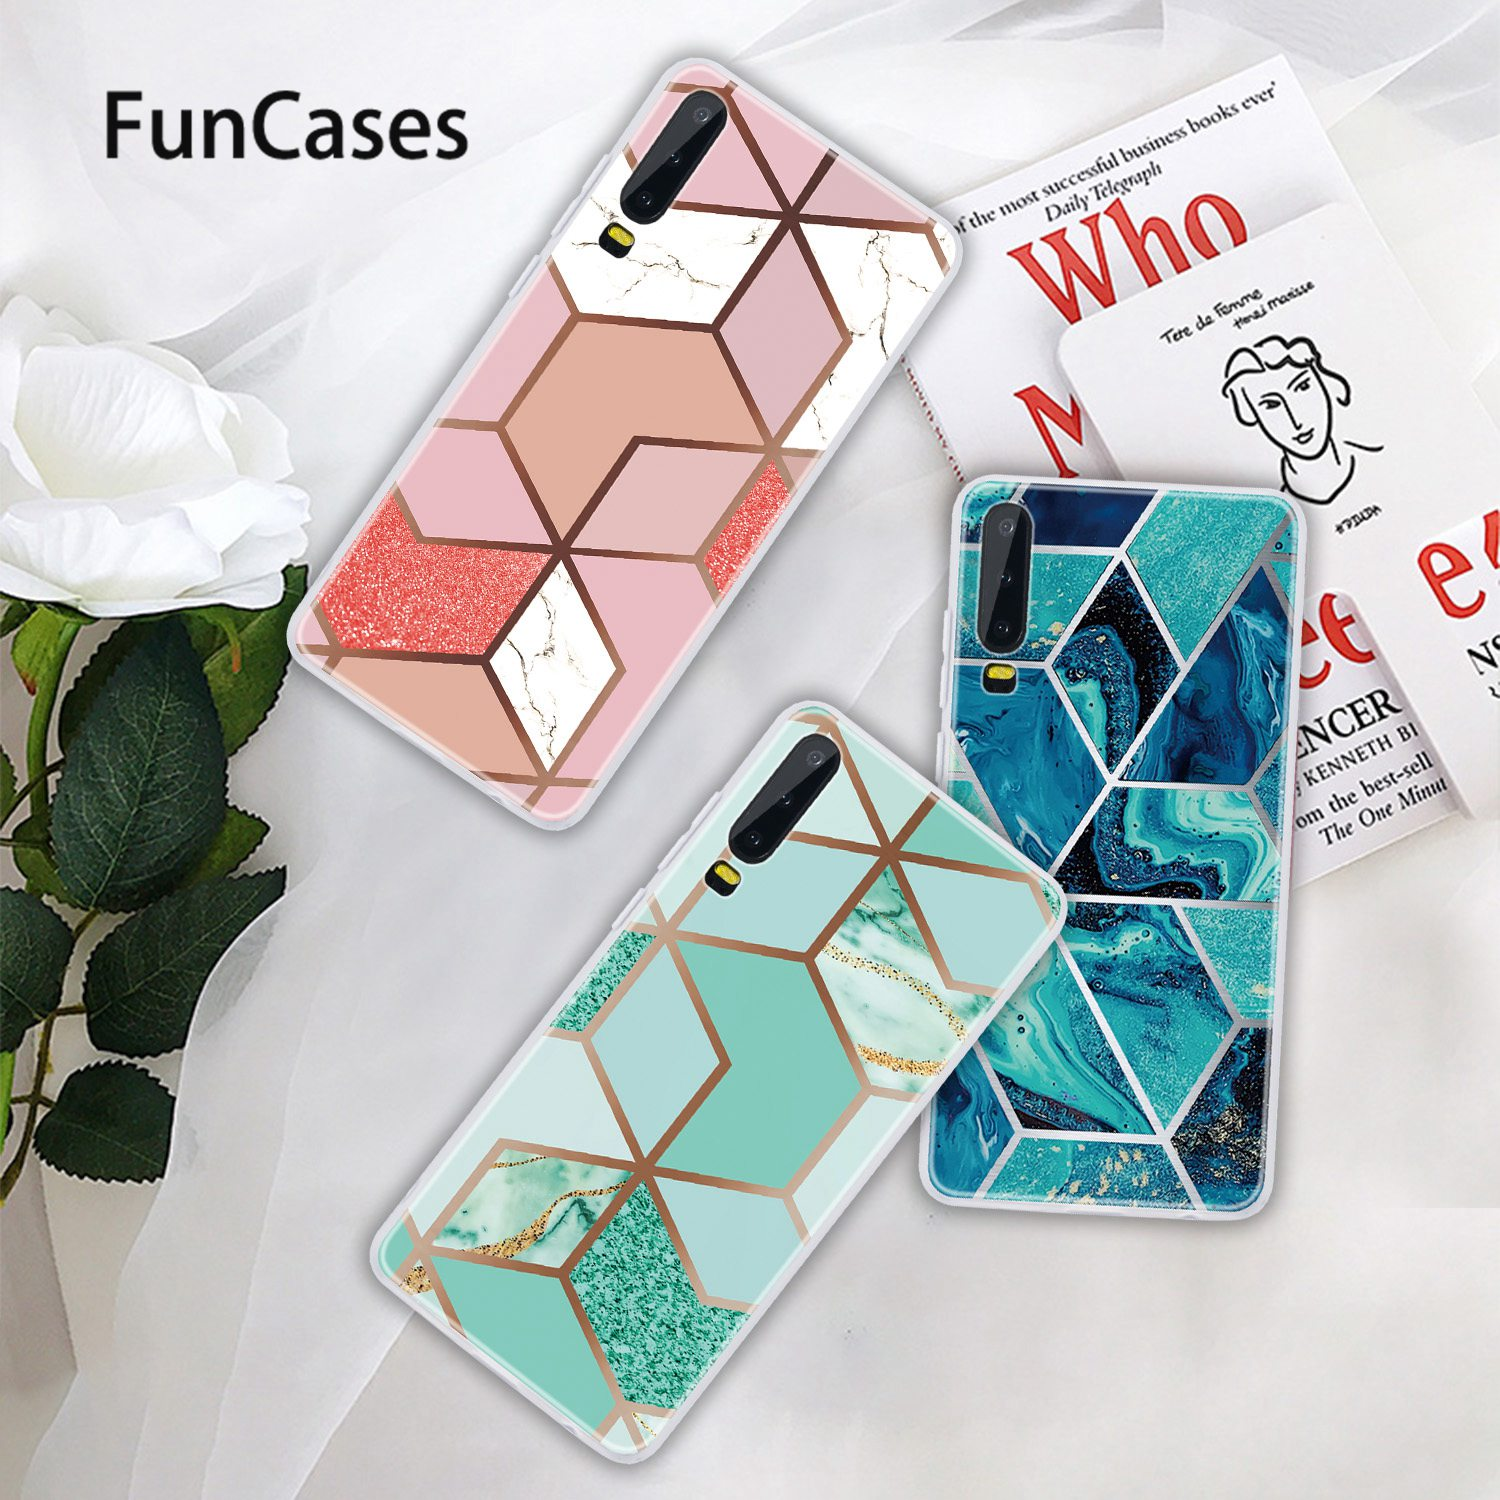 Cases For coque <font><b>Huawei</b></font> P20 Pro <font><b>Huawei</b></font> Enjoy 8E Soft TPU Cover <font><b>Y6</b></font> 2018 P30 Ascend P20 Plus Y5 Y9 Prime Case <font><b>2019</b></font> Lite Y7 Pro 8 9S image